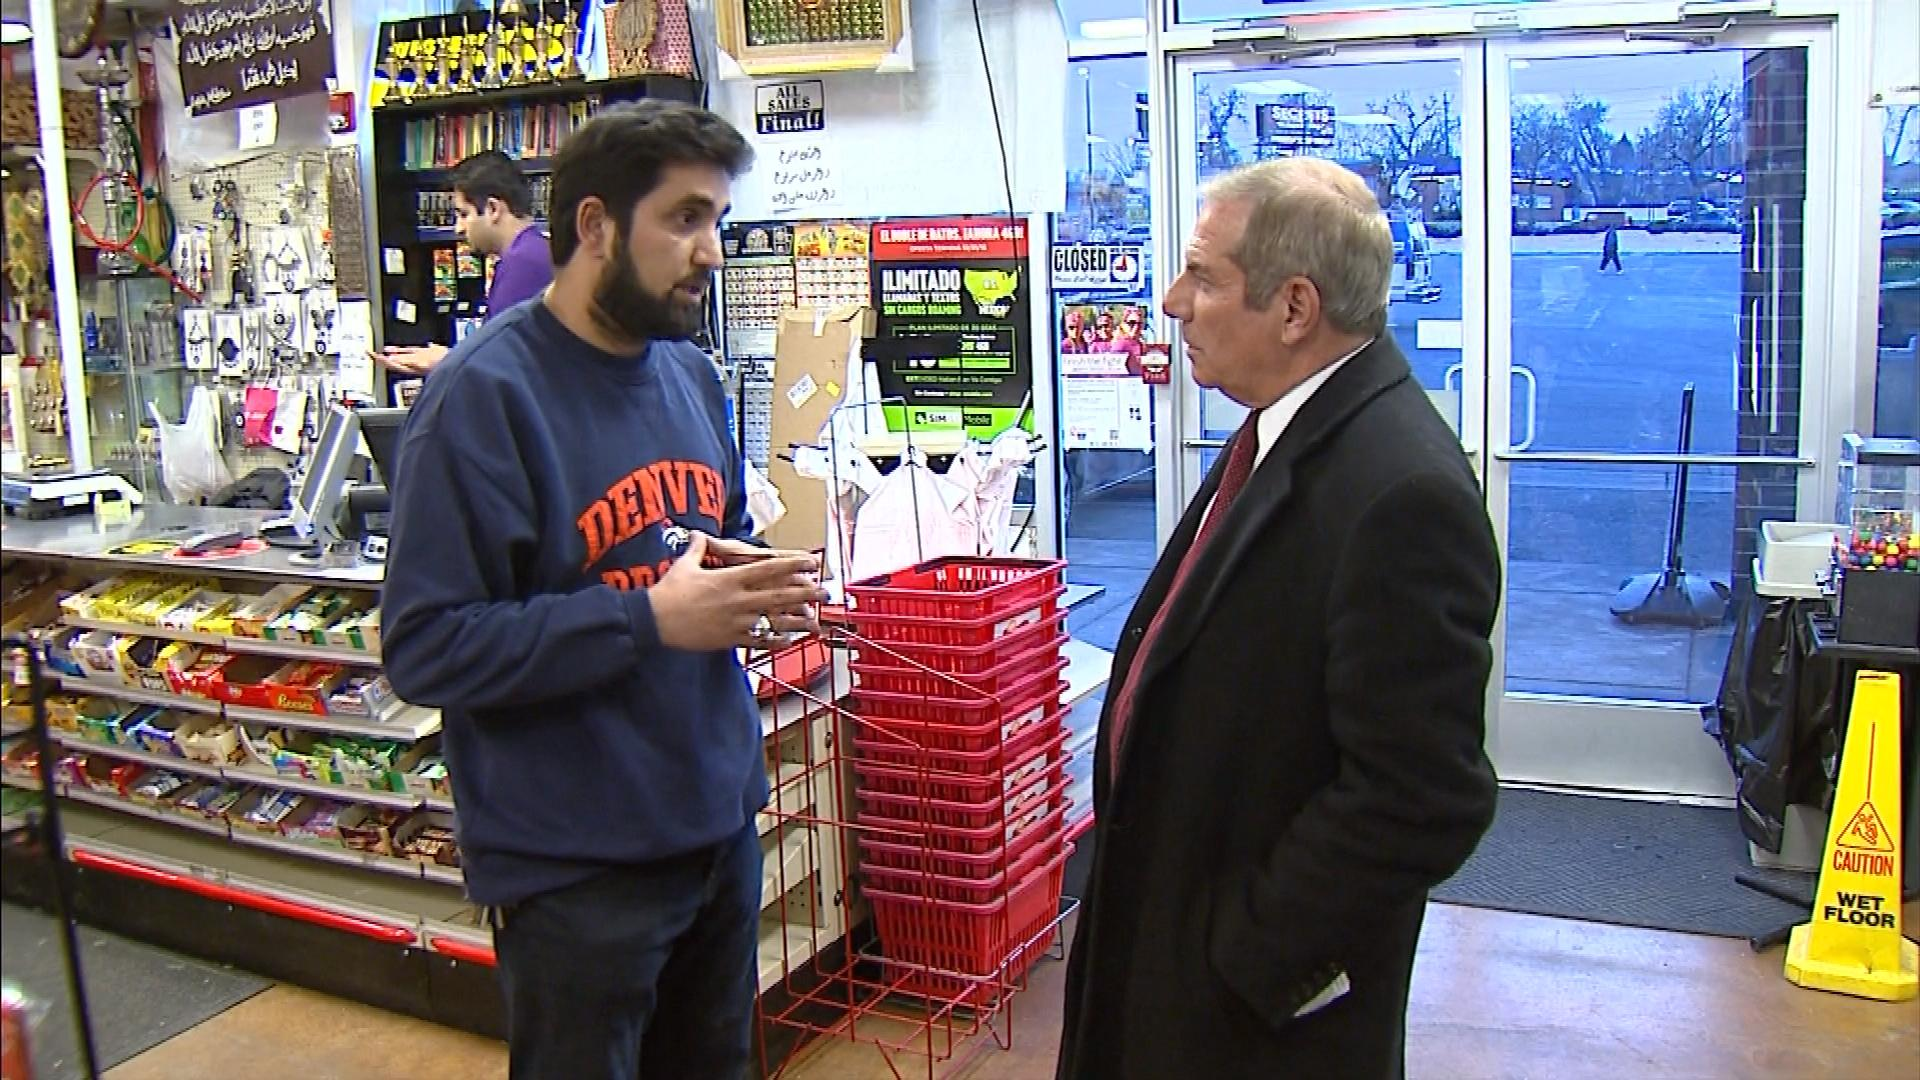 Mohammed Almosawi is interviewed by CBS4's Rick Sallinger (credit: CBS)